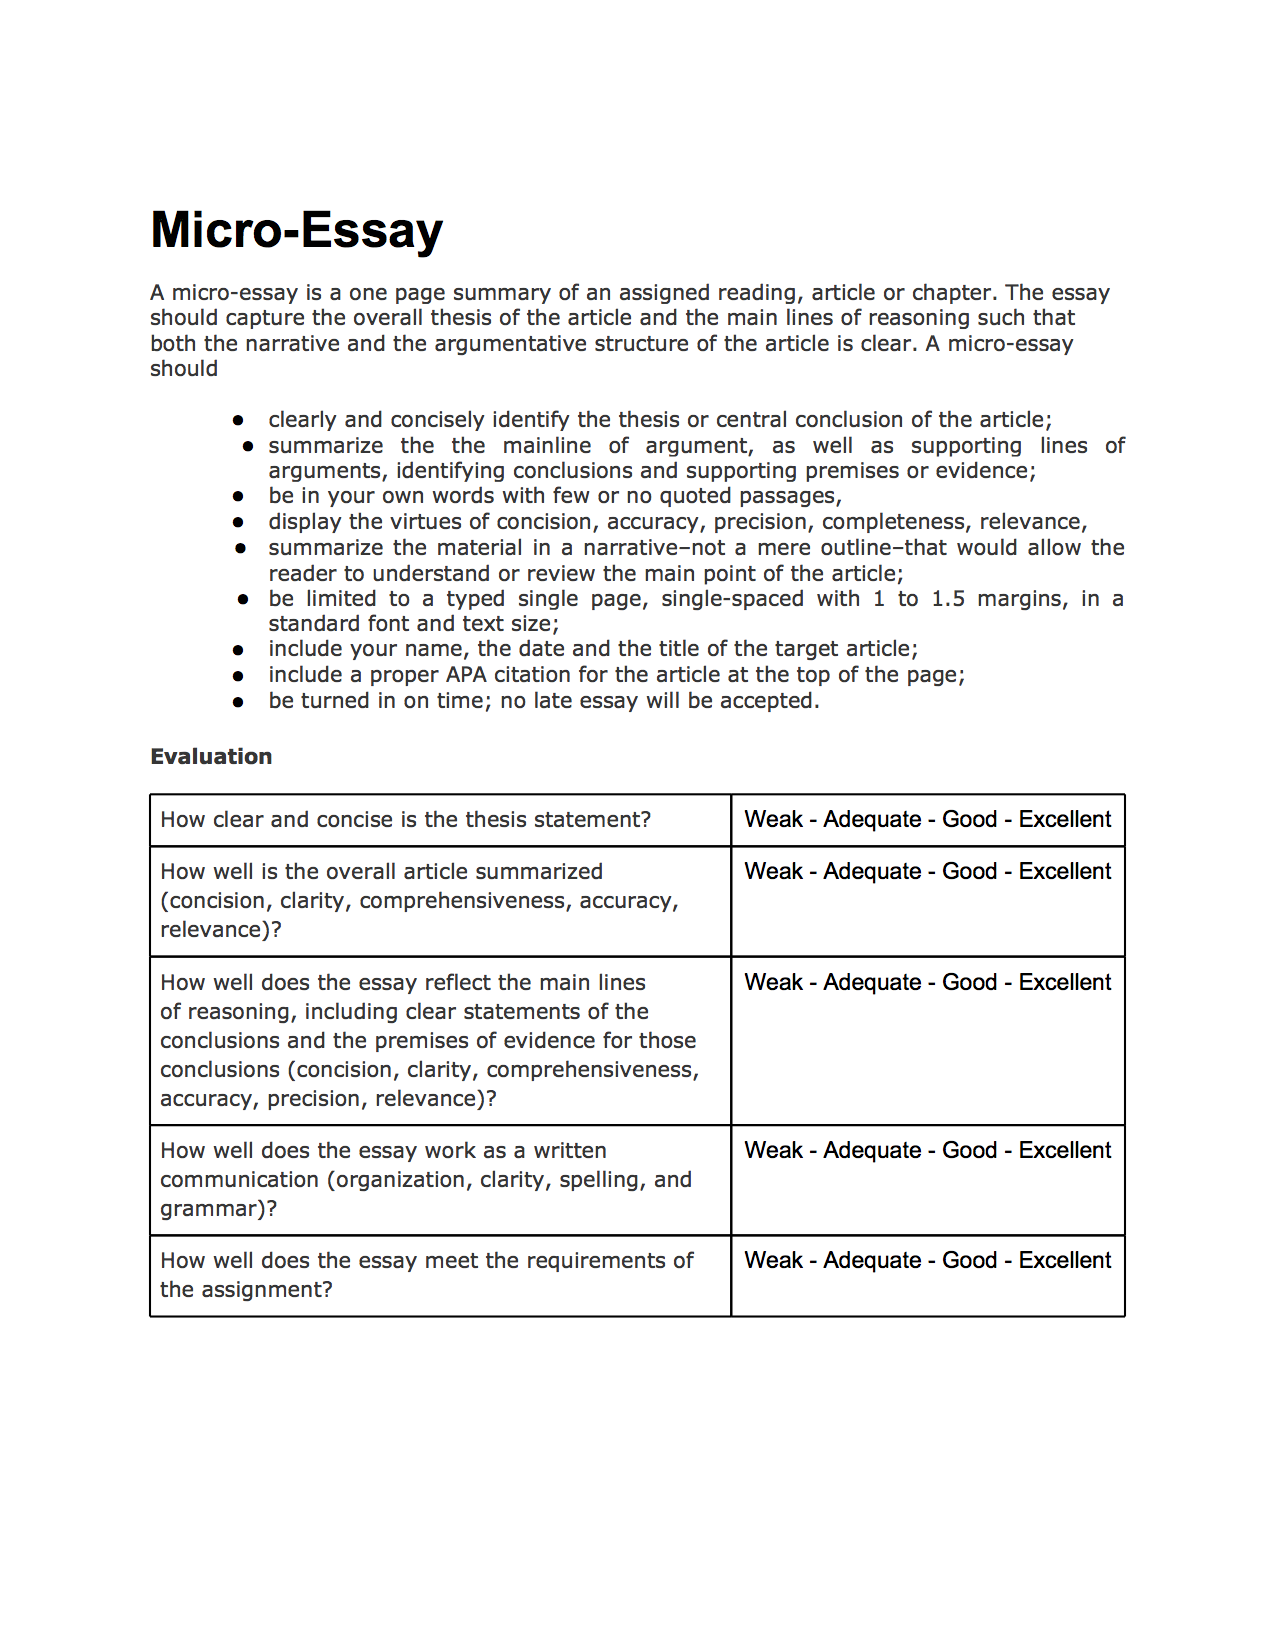 absorbent mind essay essay Check out our top free essays on absorbent mind to help you write your own essay.